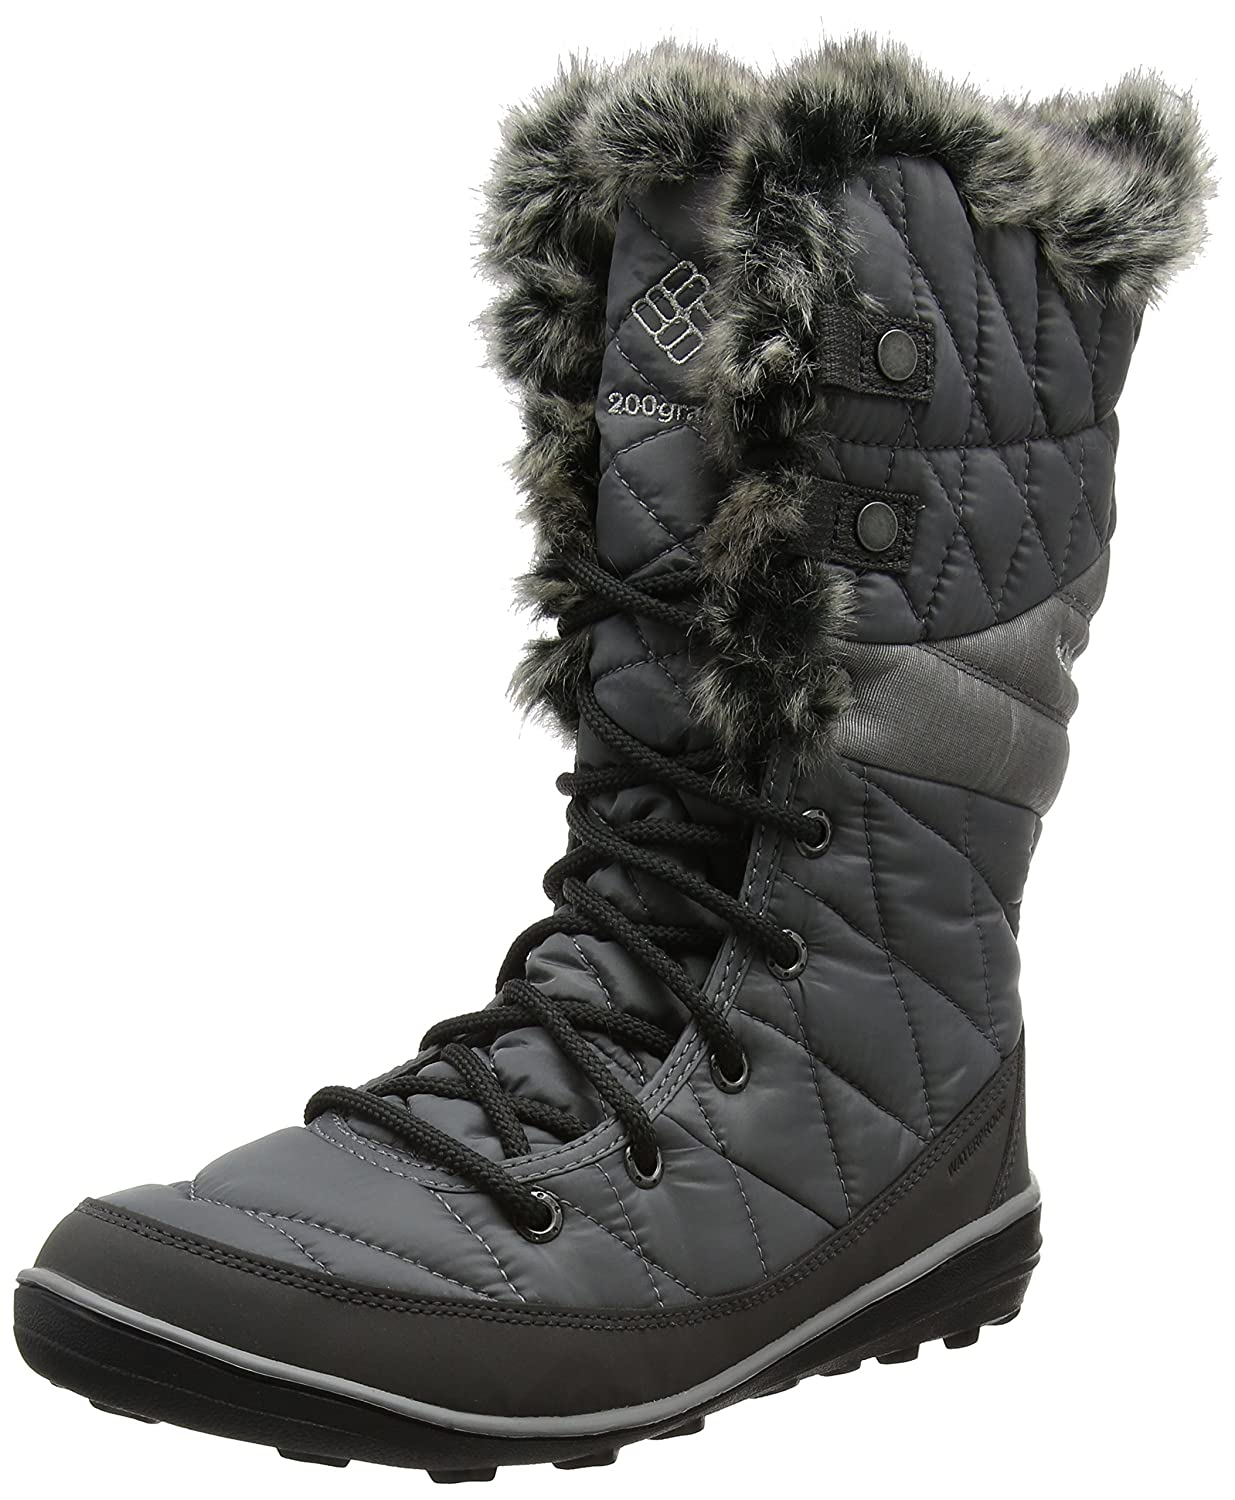 Columbia Women's Heavenly Omni-Heat Mid Calf Boot B0183M038U 8 B(M) US|Quarry